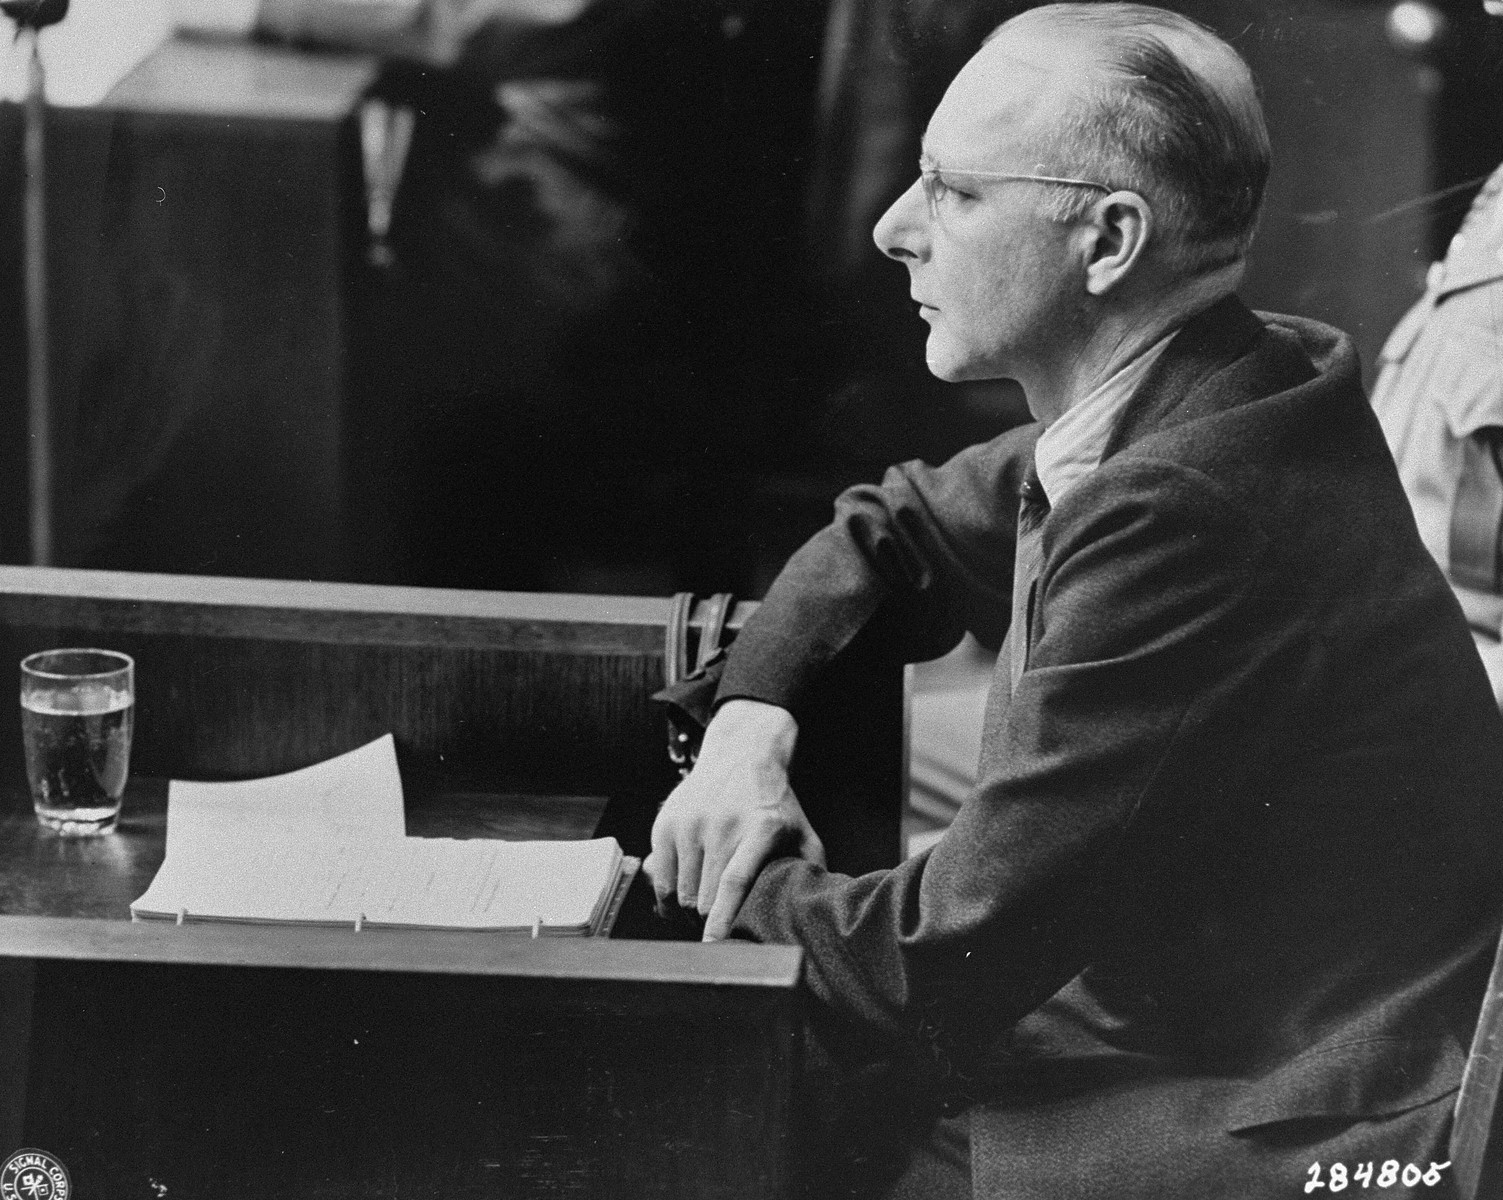 Victor Brack on the first day of his testimony in his own defense during the Doctors Trial.    Brack served as the Chief Administrative Officer of the Chancellery during the war.